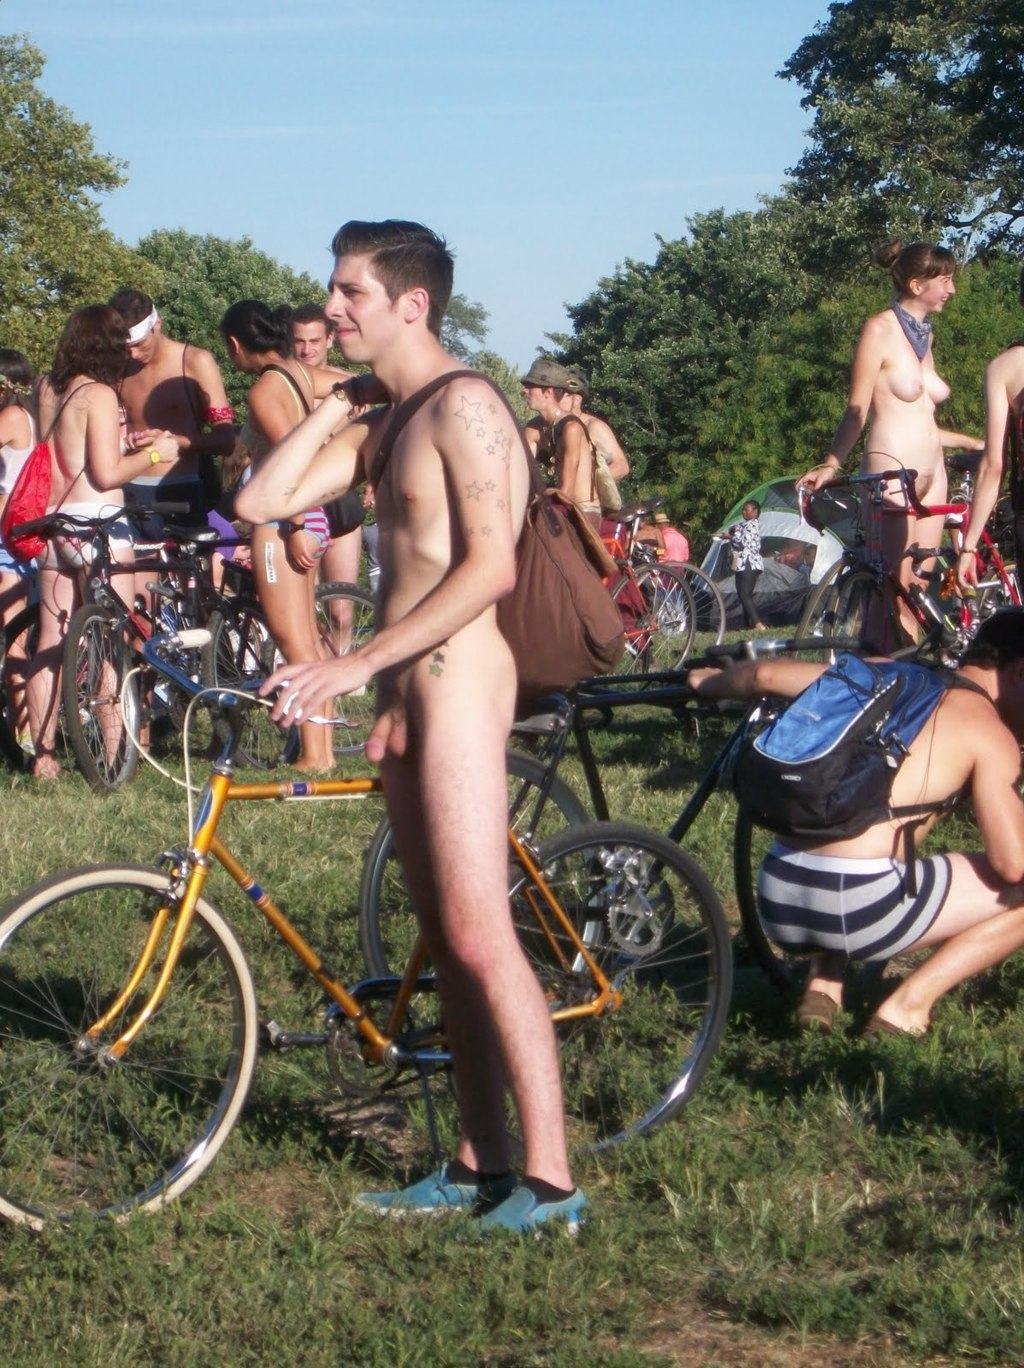 Naked guys outdoor: nude cyclist and dudes in public ...